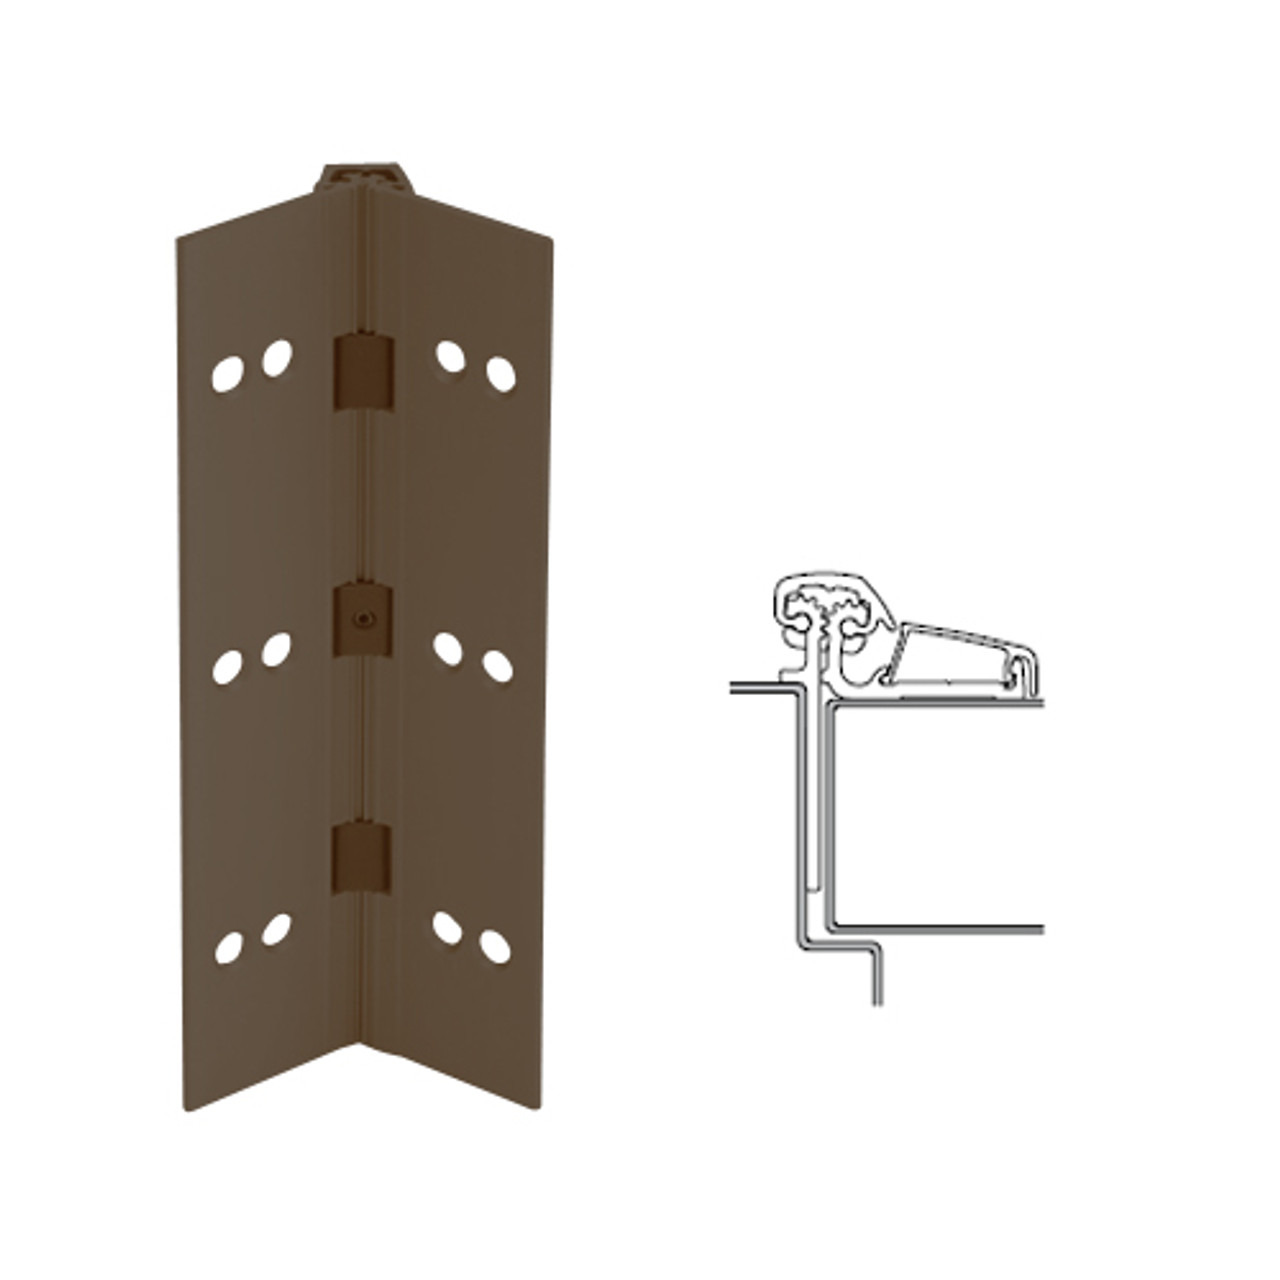 053XY-313AN-83-SECWDHM IVES Adjustable Half Surface Continuous Geared Hinges with Security Screws - Hex Pin Drive in Dark Bronze Anodized